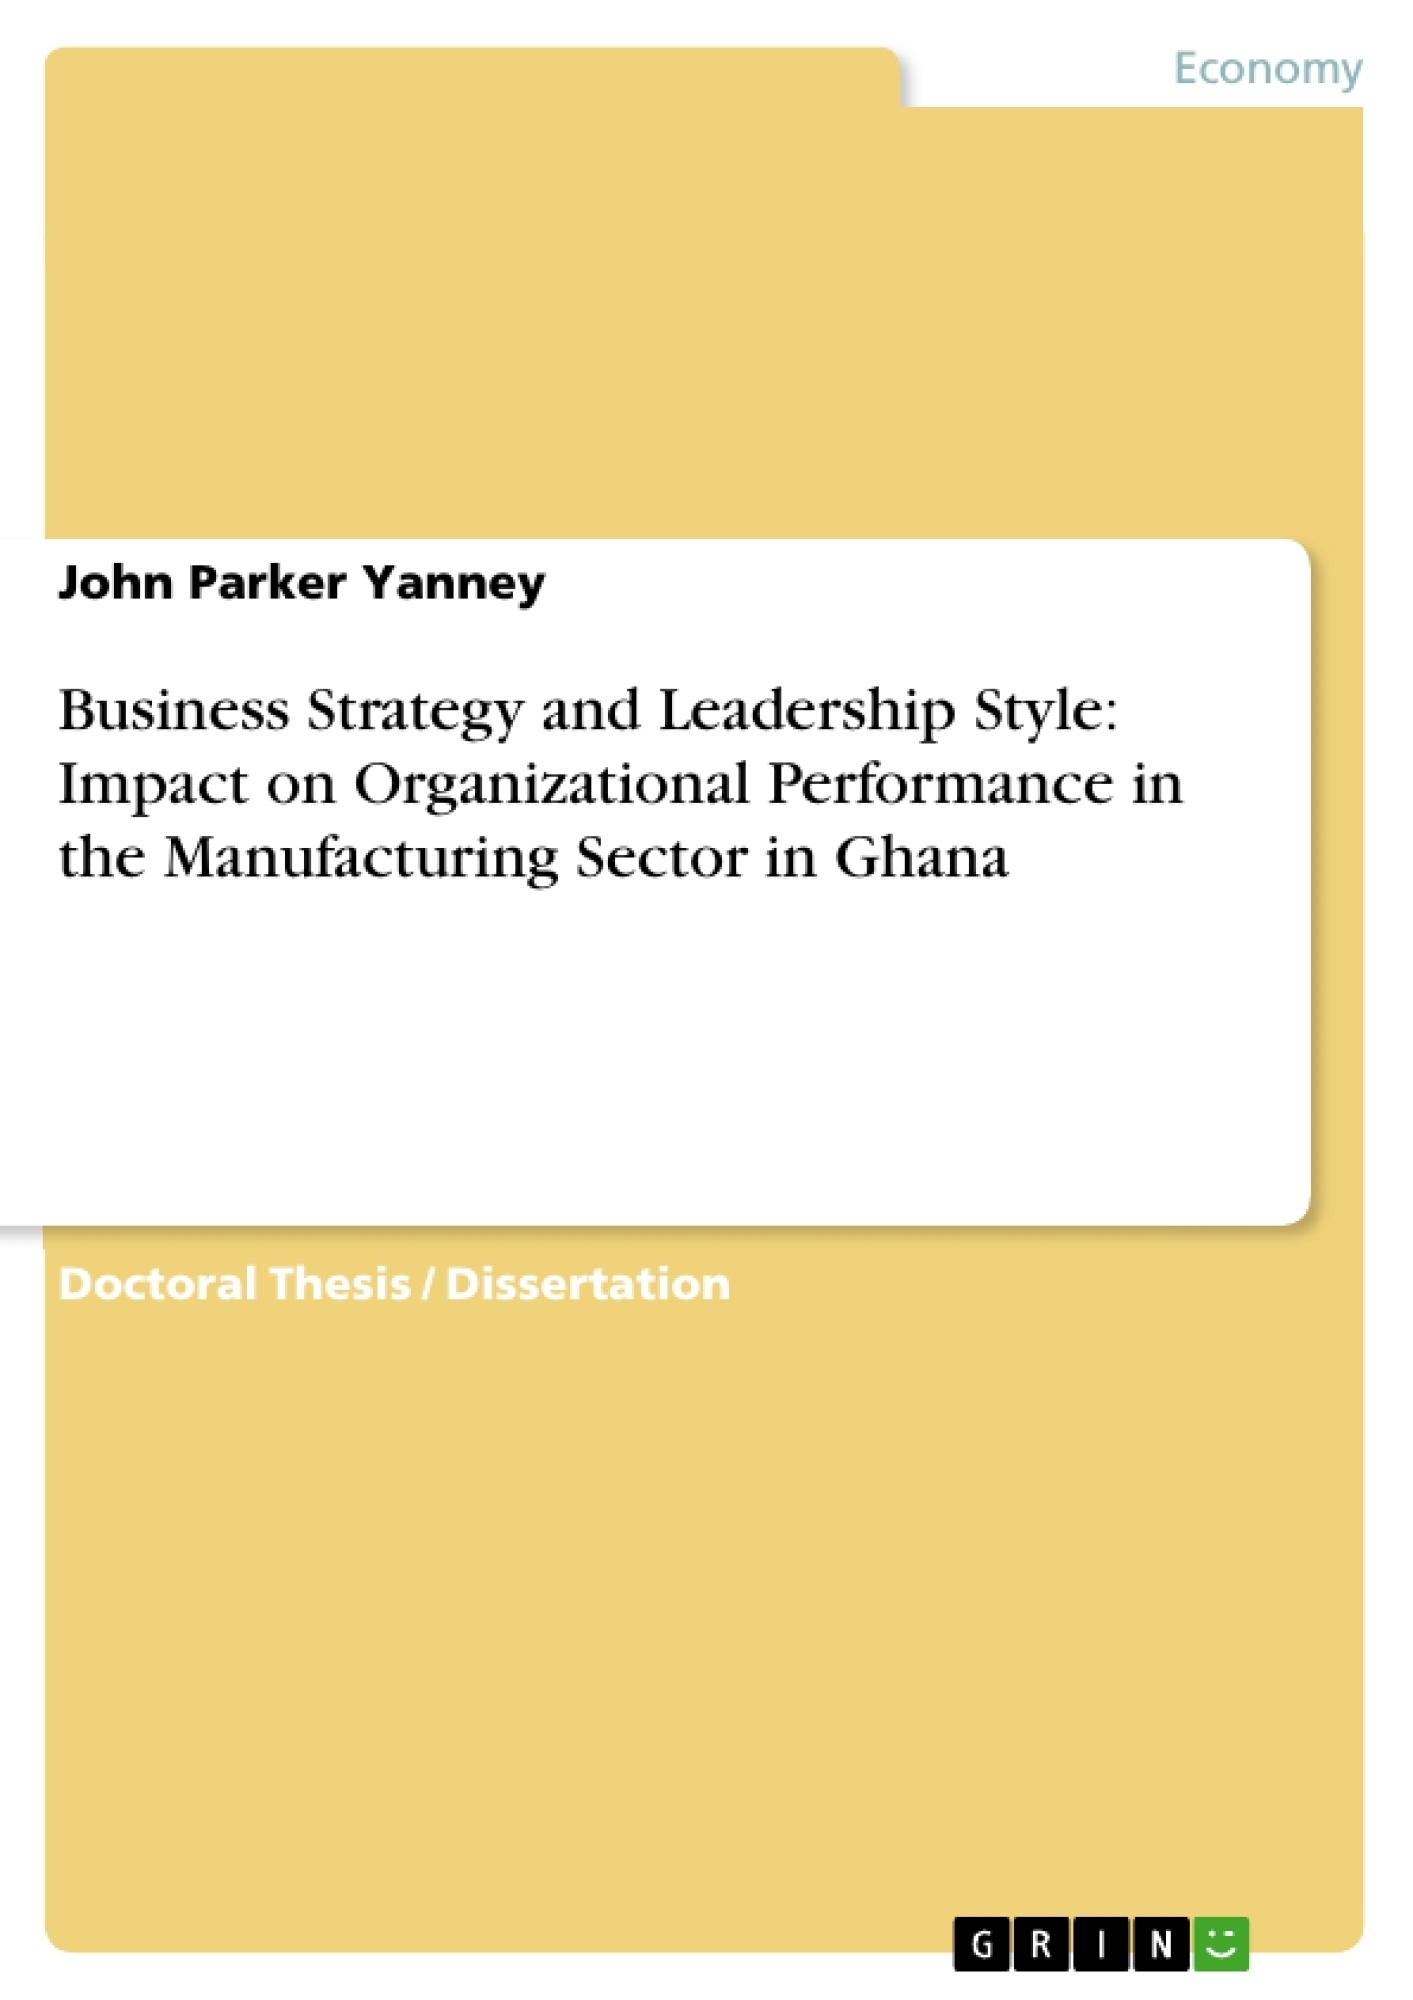 Title: Business Strategy and Leadership Style: Impact on Organizational Performance in the Manufacturing Sector in Ghana